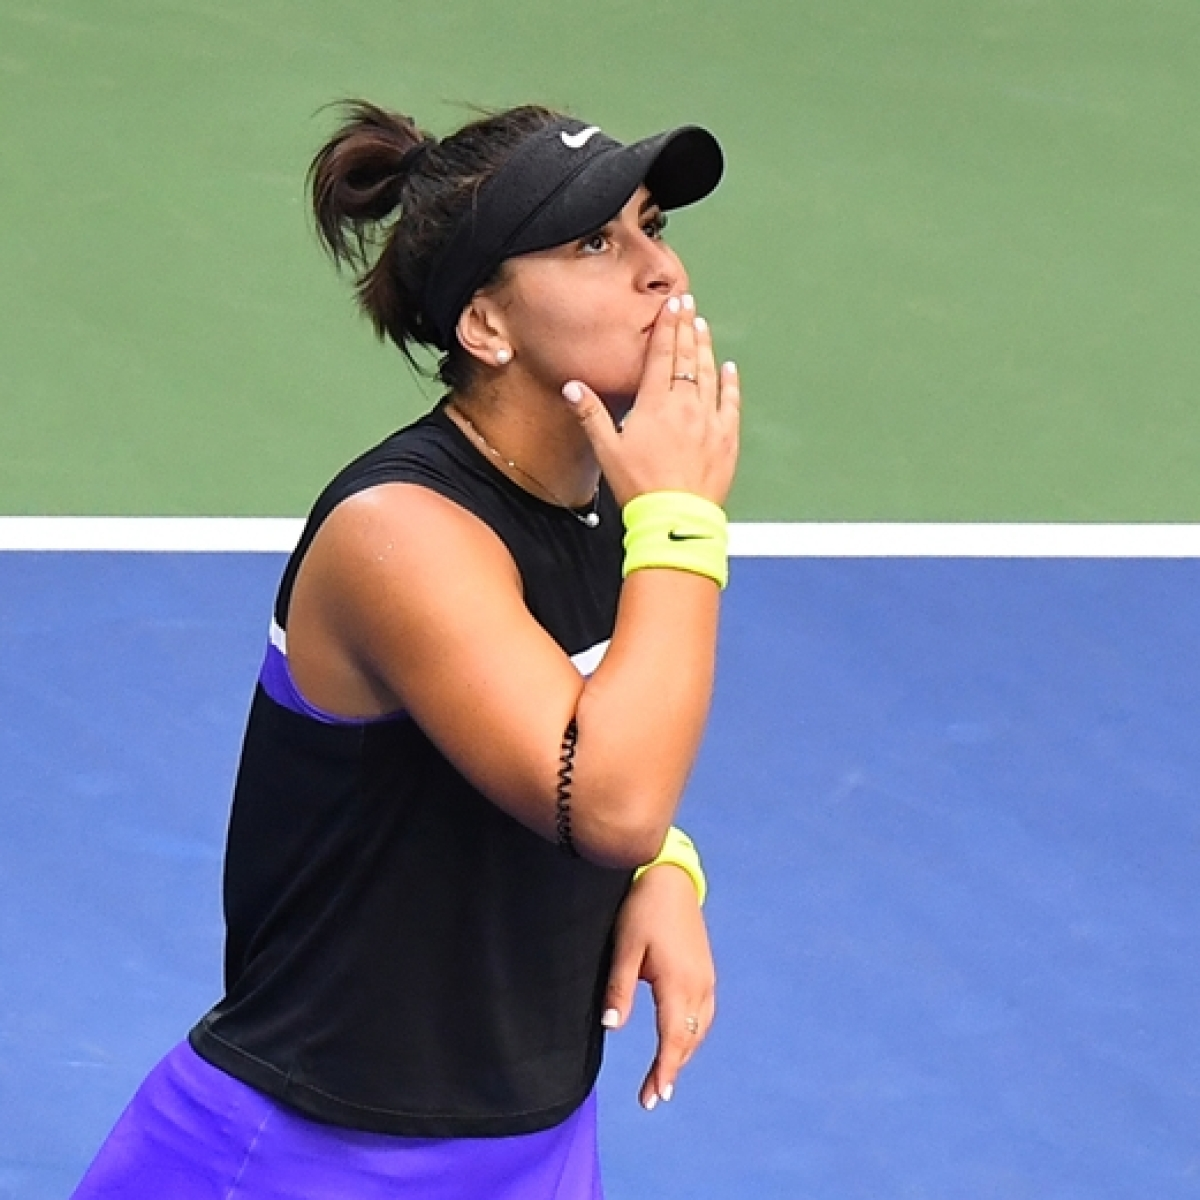 The 19-year-old Bianca Andreescu stalls Serena's American dream; becomes first from Canada to win a singles' Grand Slam